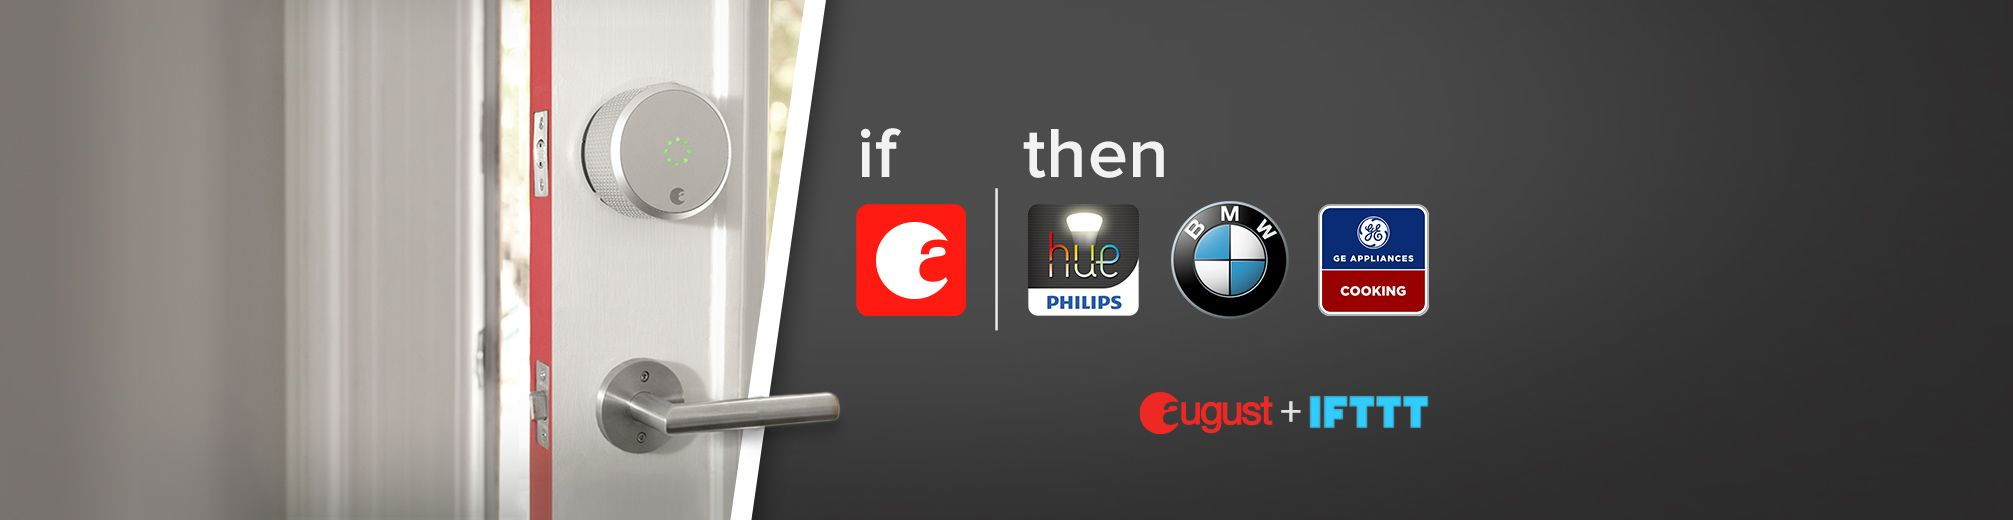 August Home Adds IFTTT Integration to Smart Lock